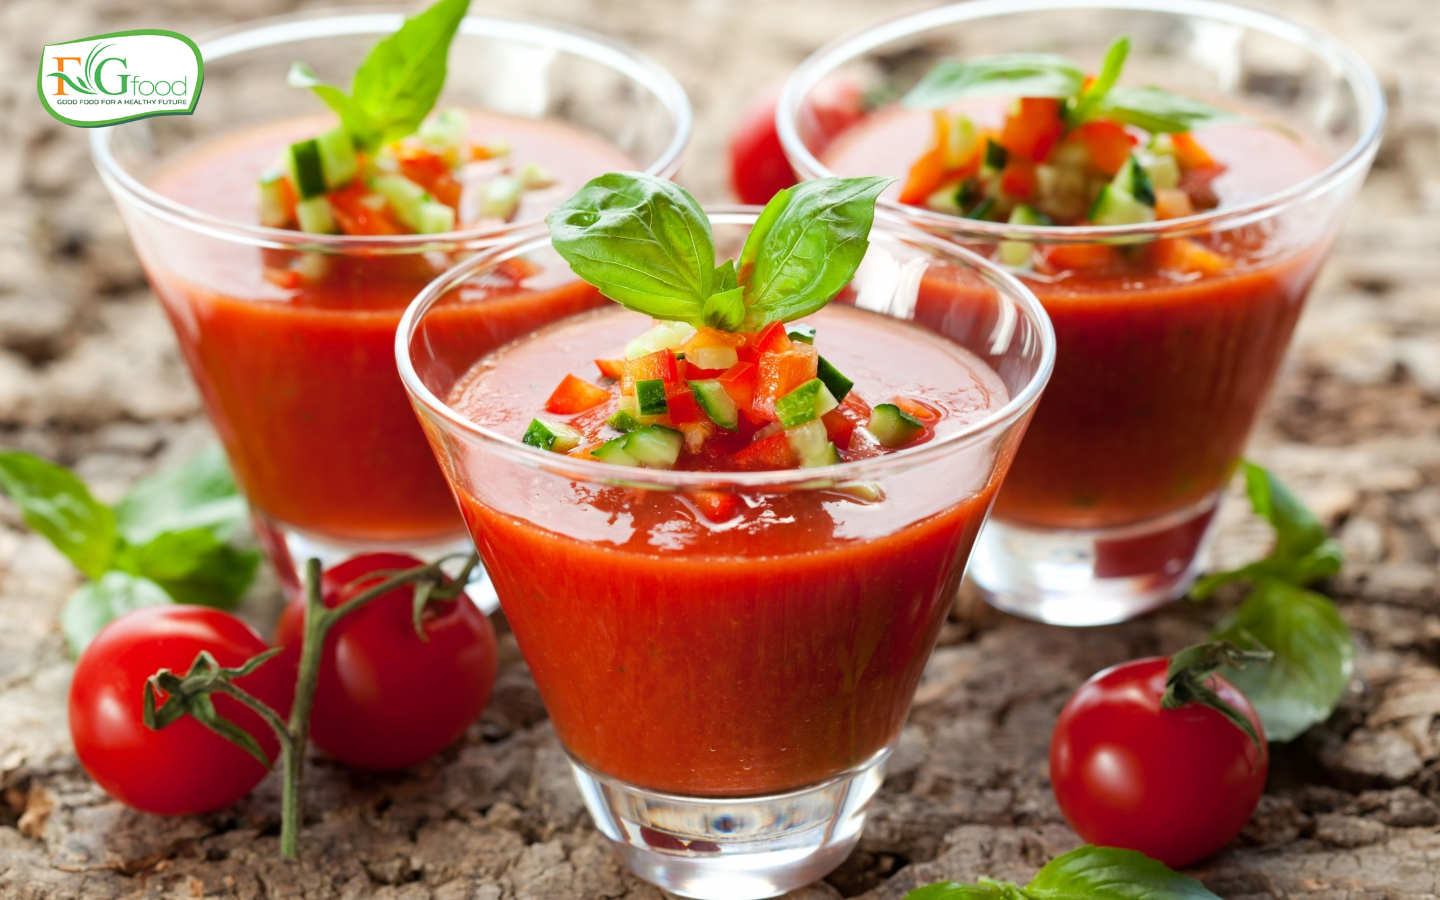 Tomato Weight Loss – Tomato Juice for Weight Loss Naturally